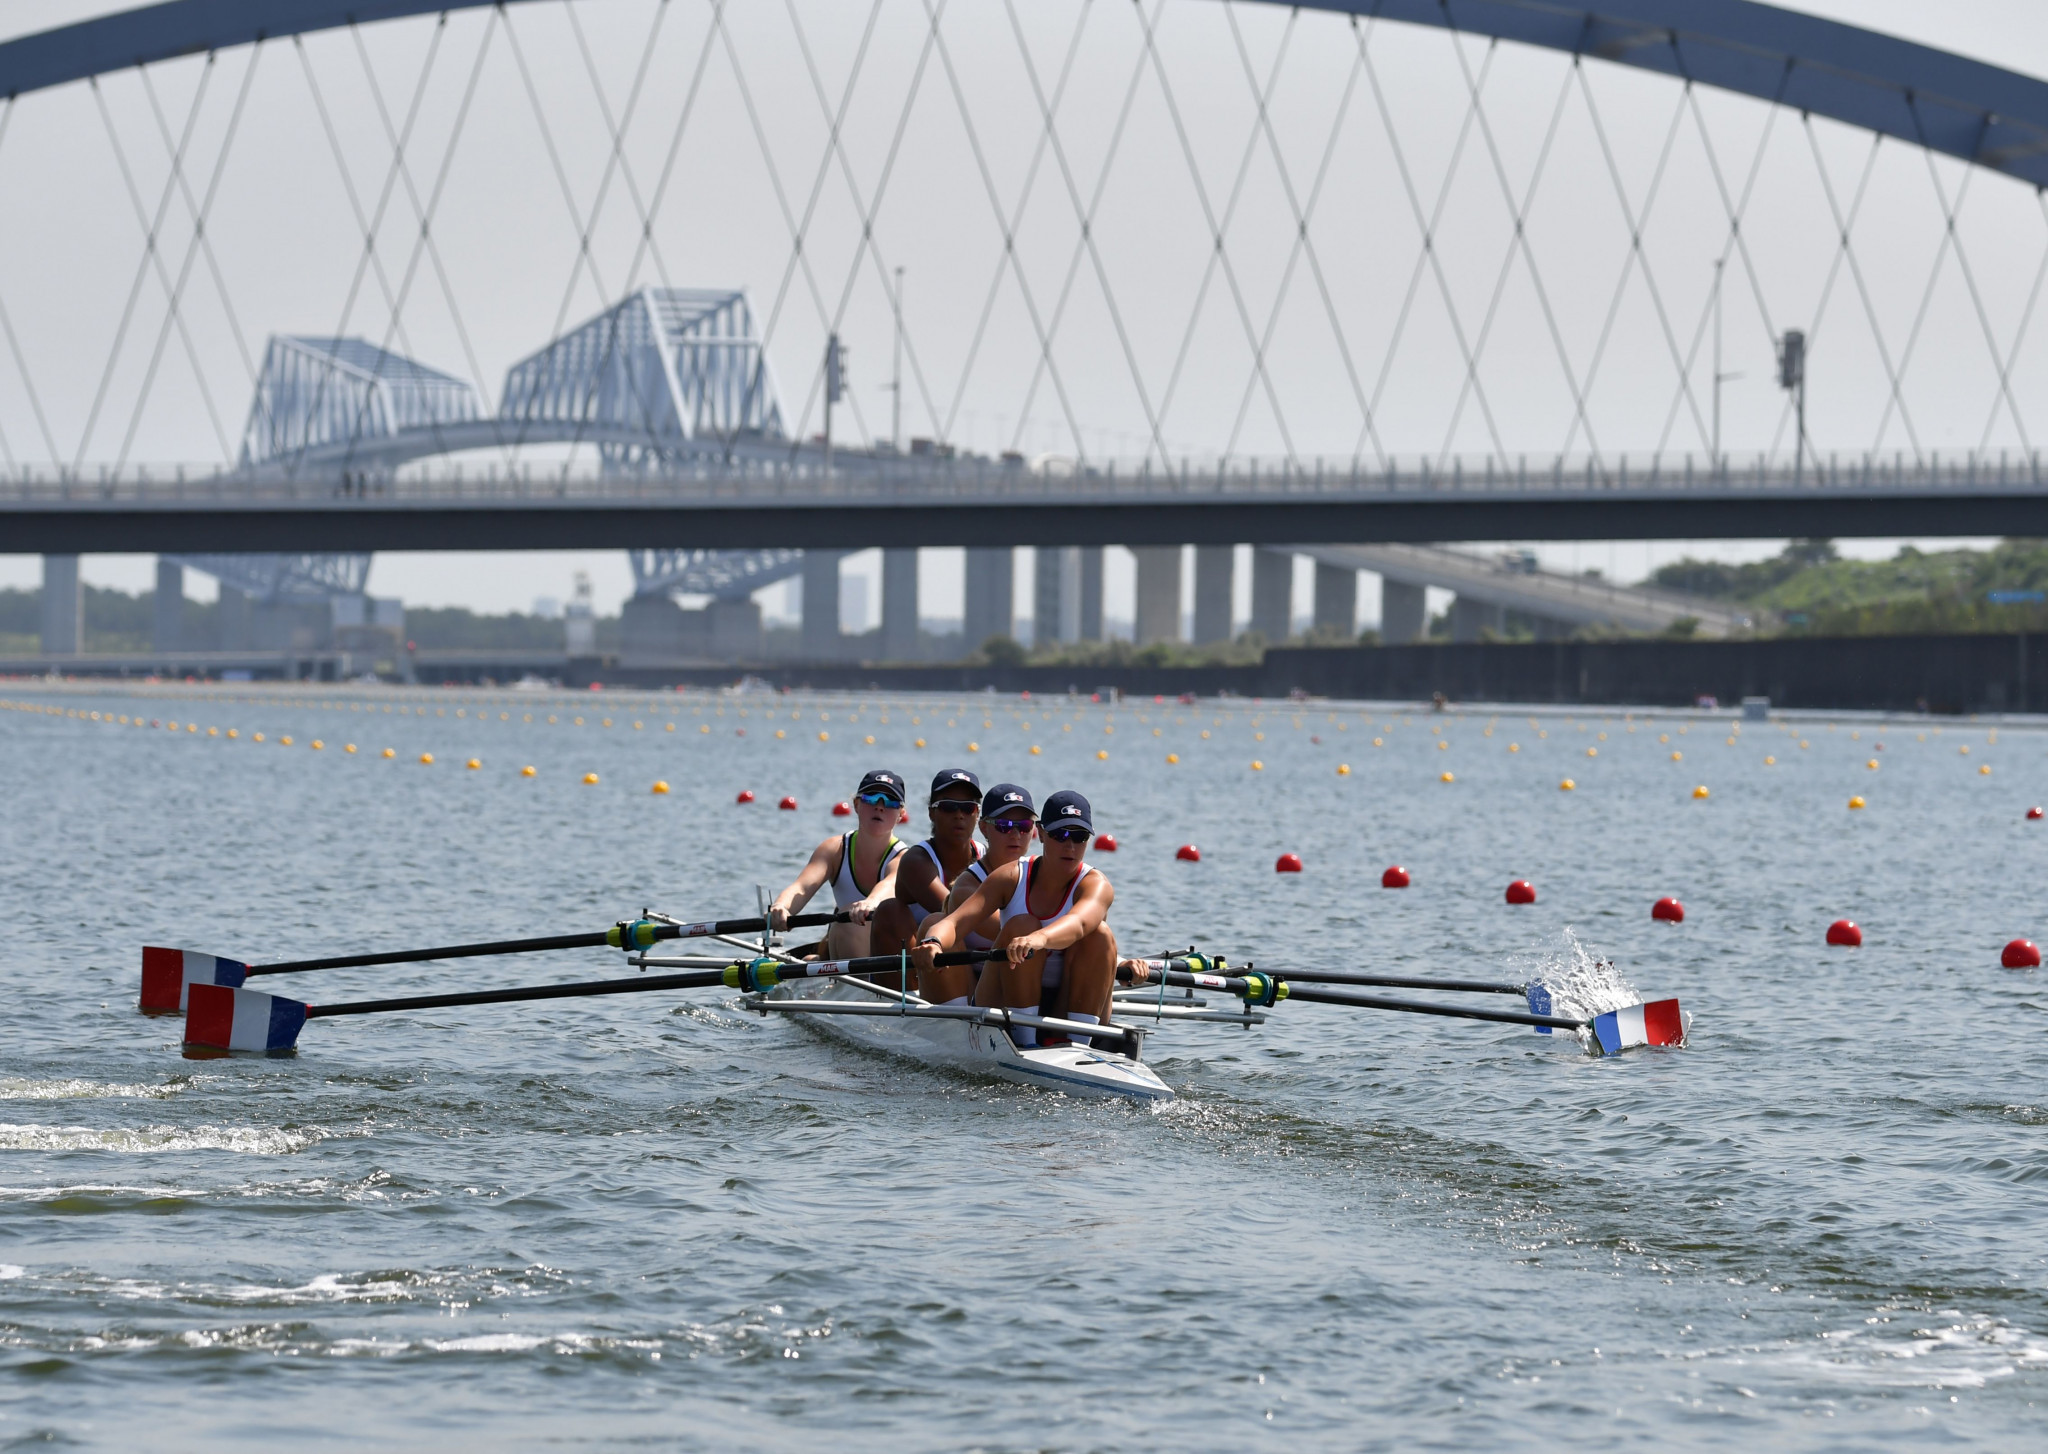 Several rowers were treated for heatstroke at the 2019 World Rowing Junior Championships in Tokyo ©Getty Images